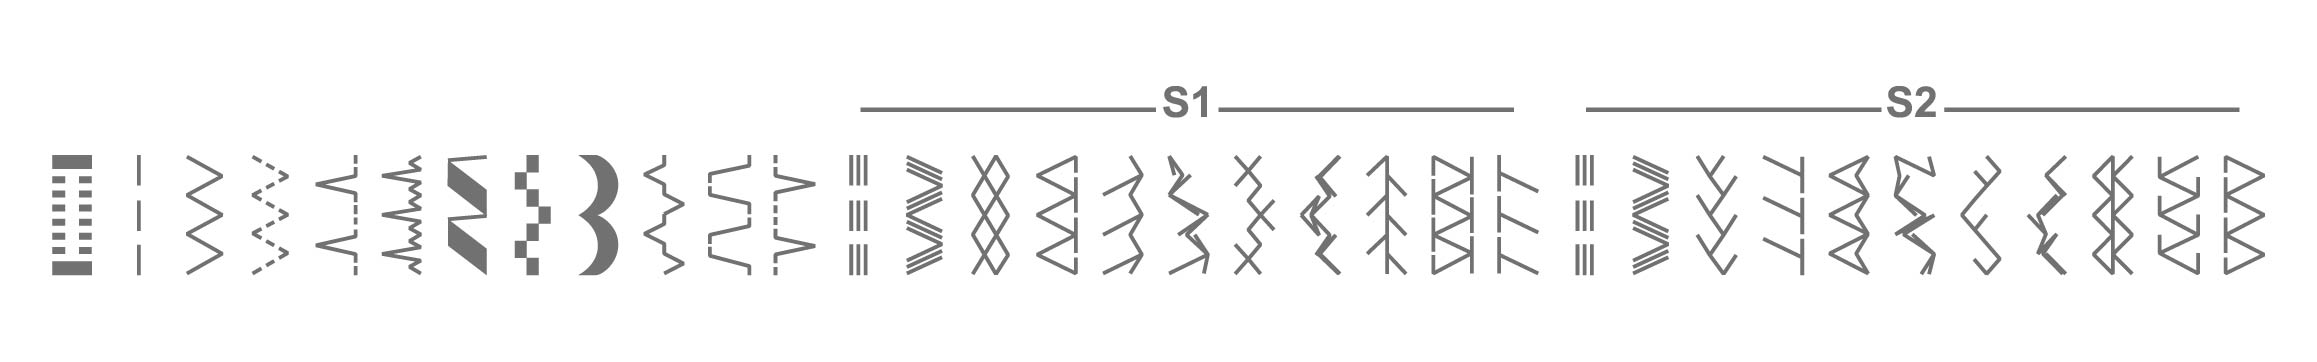 K132A Stitch Patterns